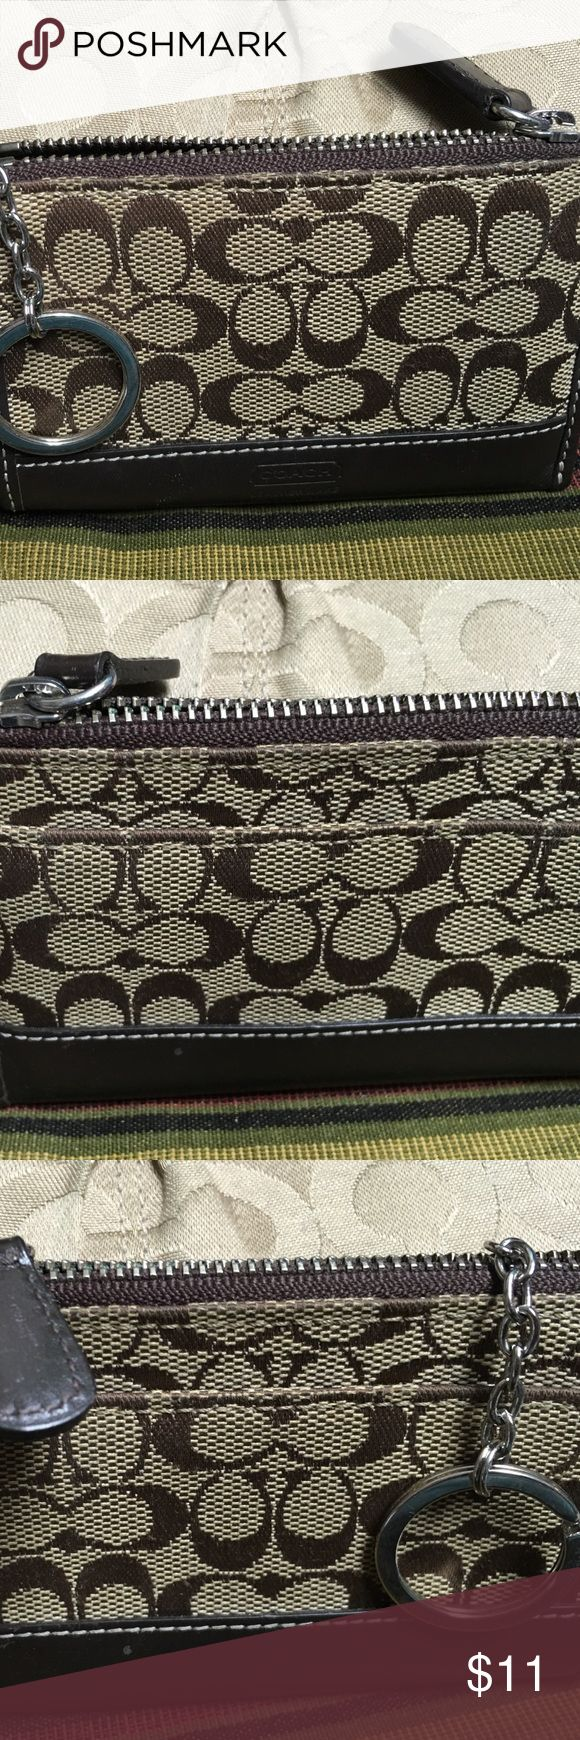 Coach card holder.. Key chain ring Brown .. Zipper pocket with side slot. Coach Accessories Key & Card Holders